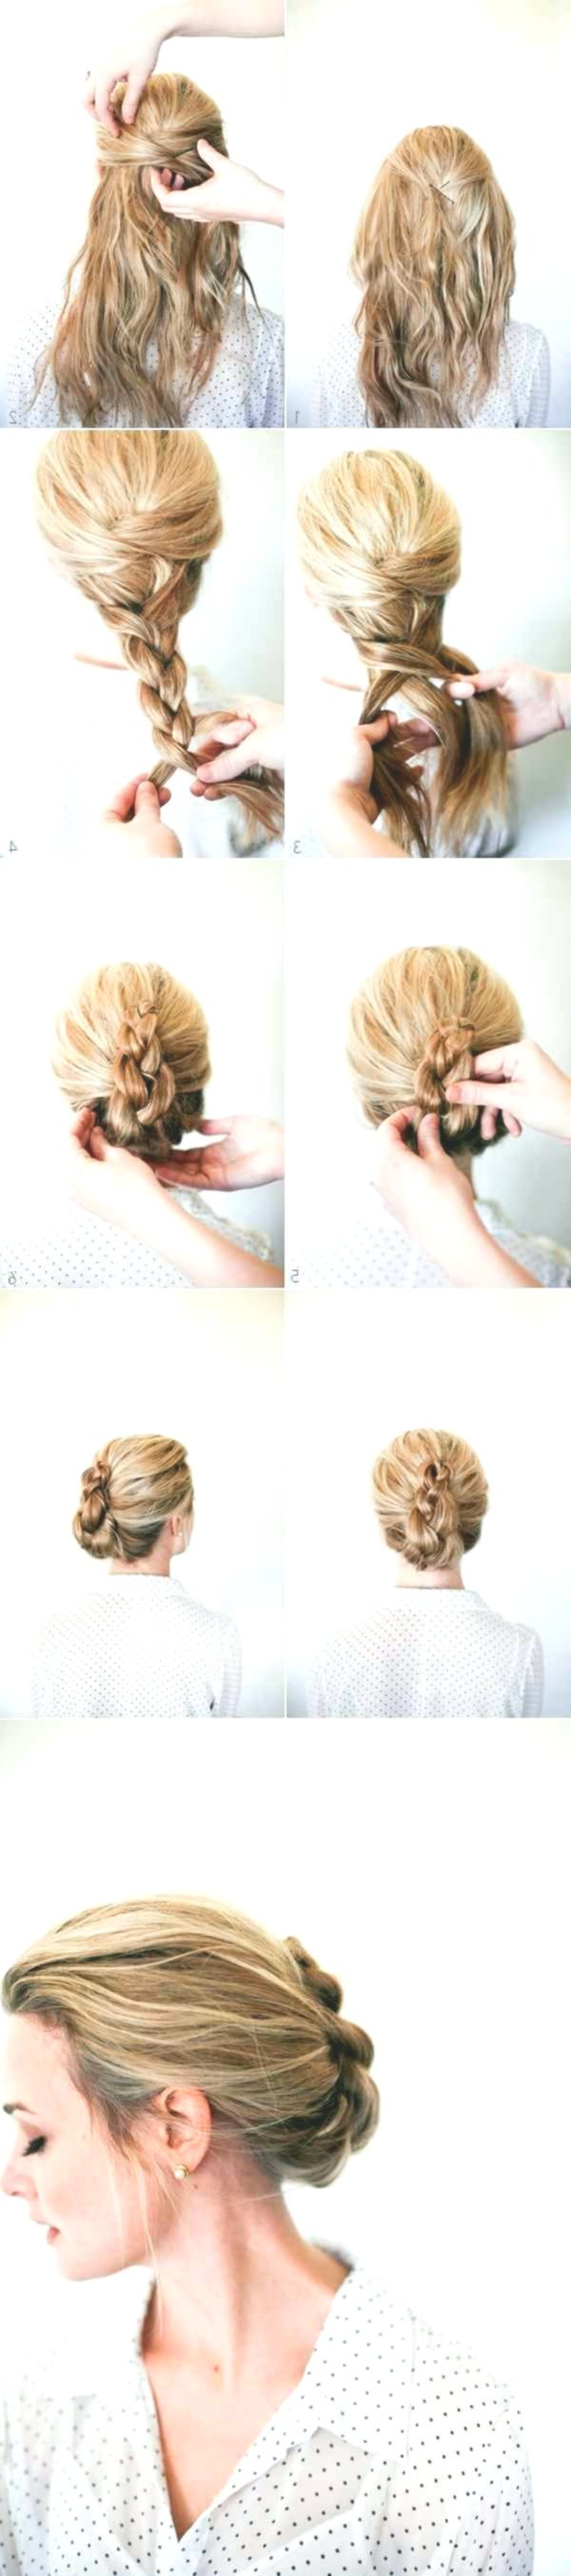 lovely braided updos ideas-Fantastic braided updo models